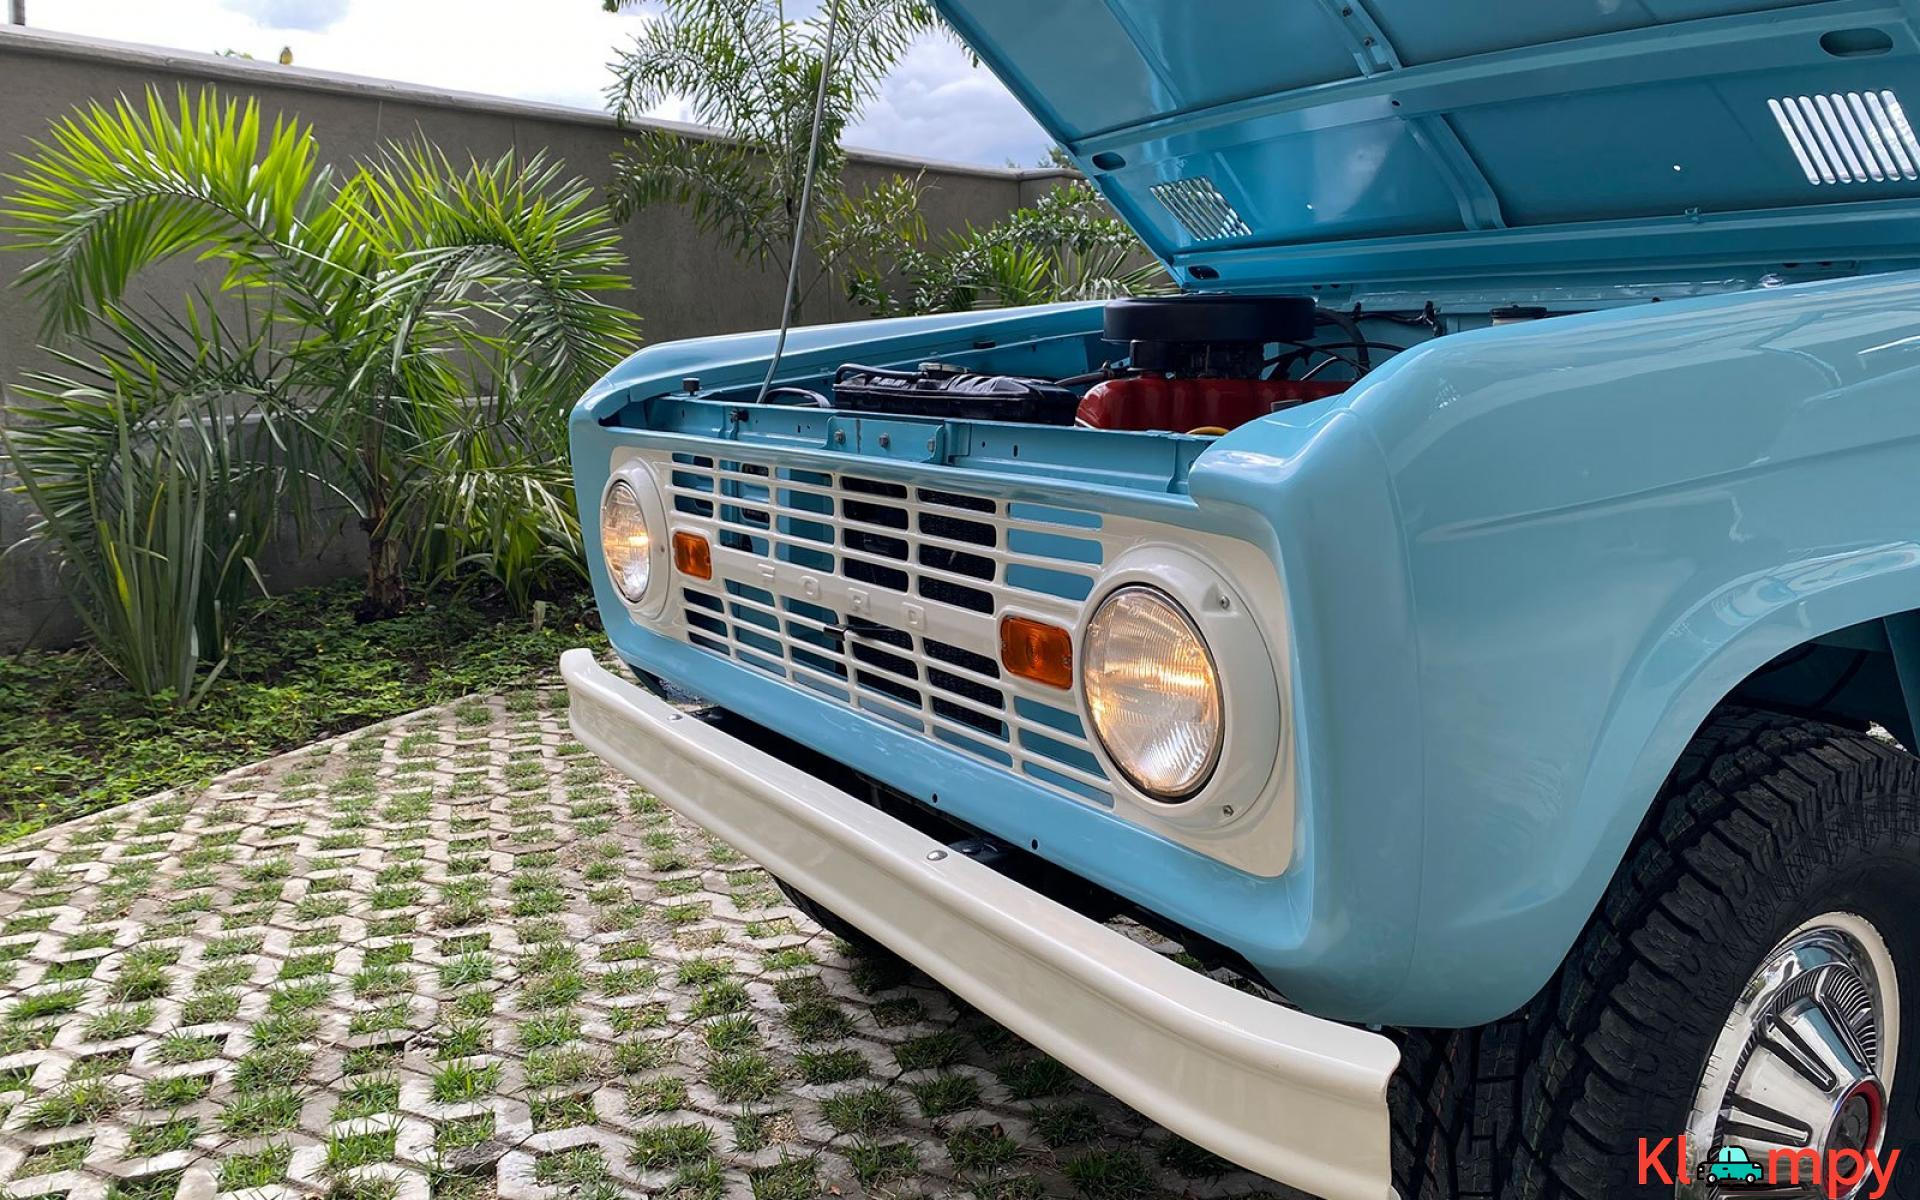 1967 Ford Bronco 170 Inline-Six - 10/21